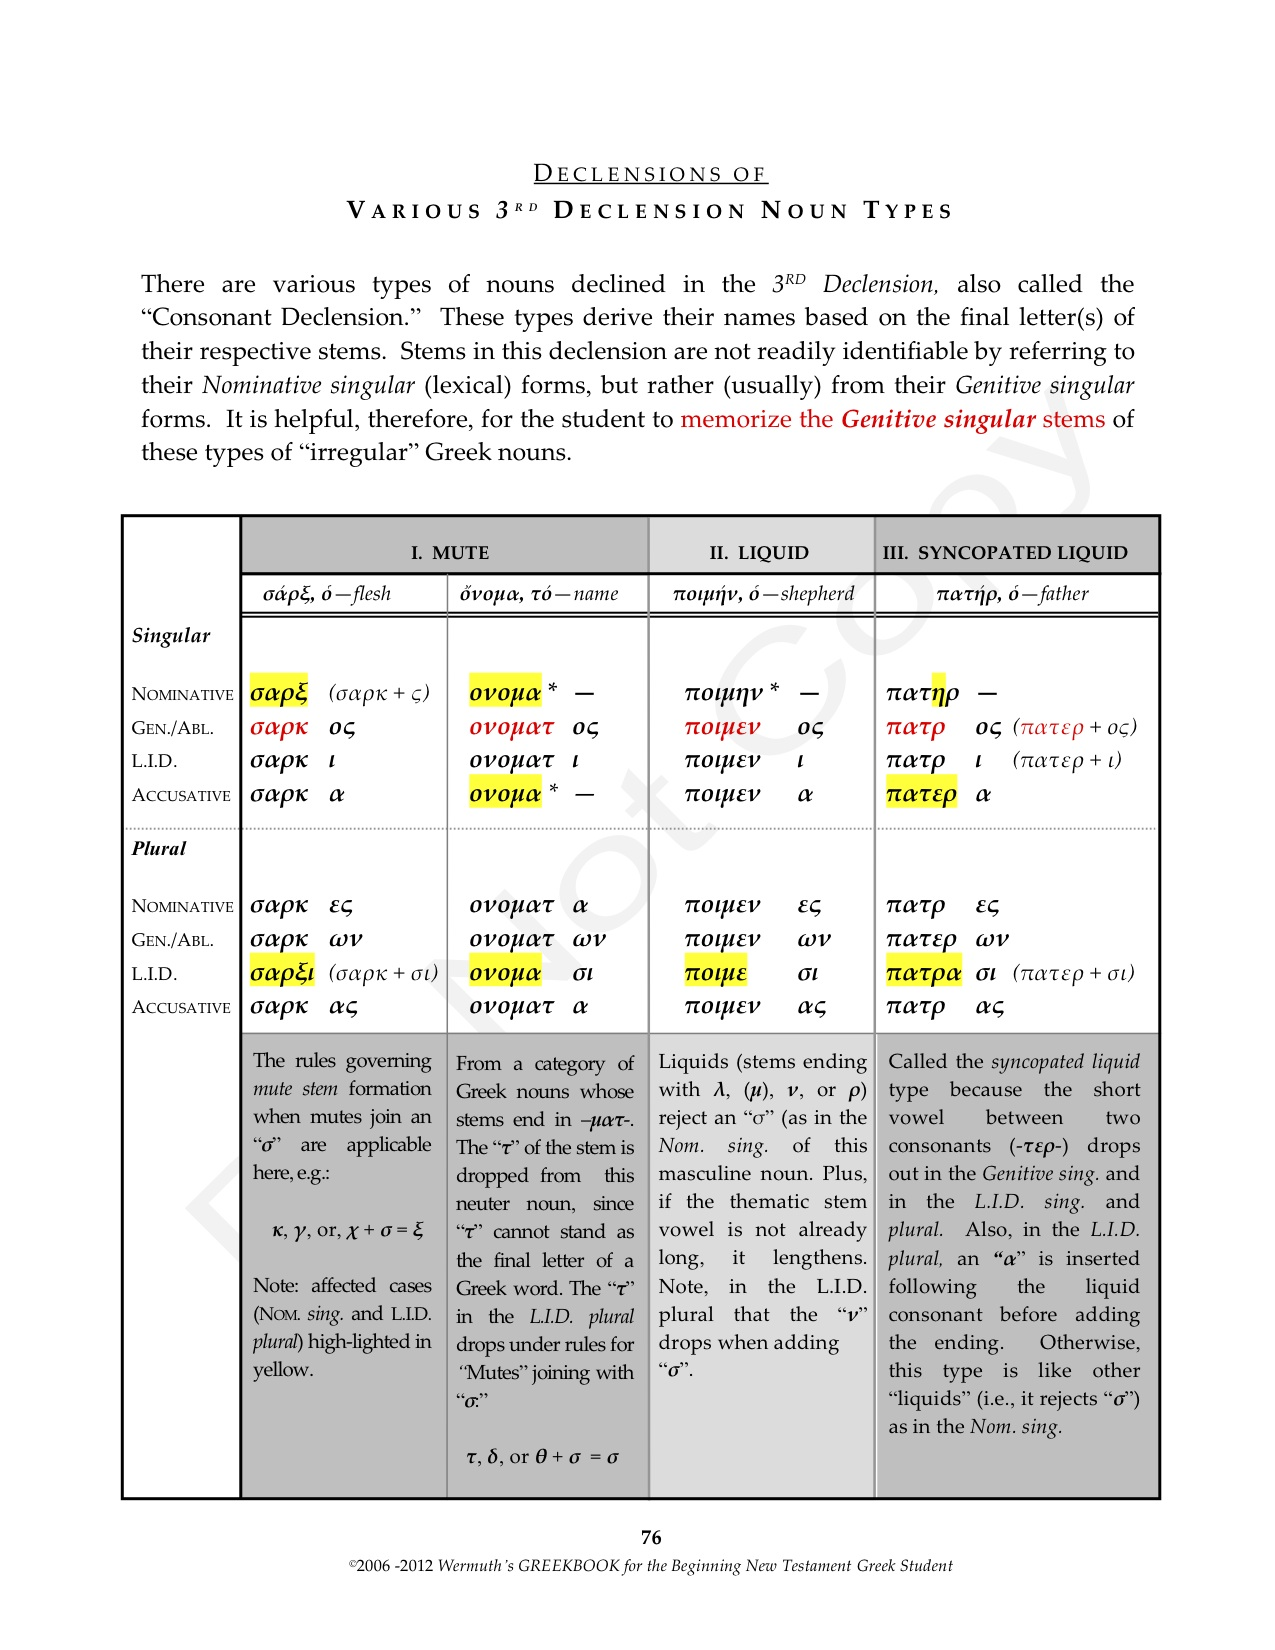 The Rhyme Amp Reason Of 3rd Declension Greek Noun